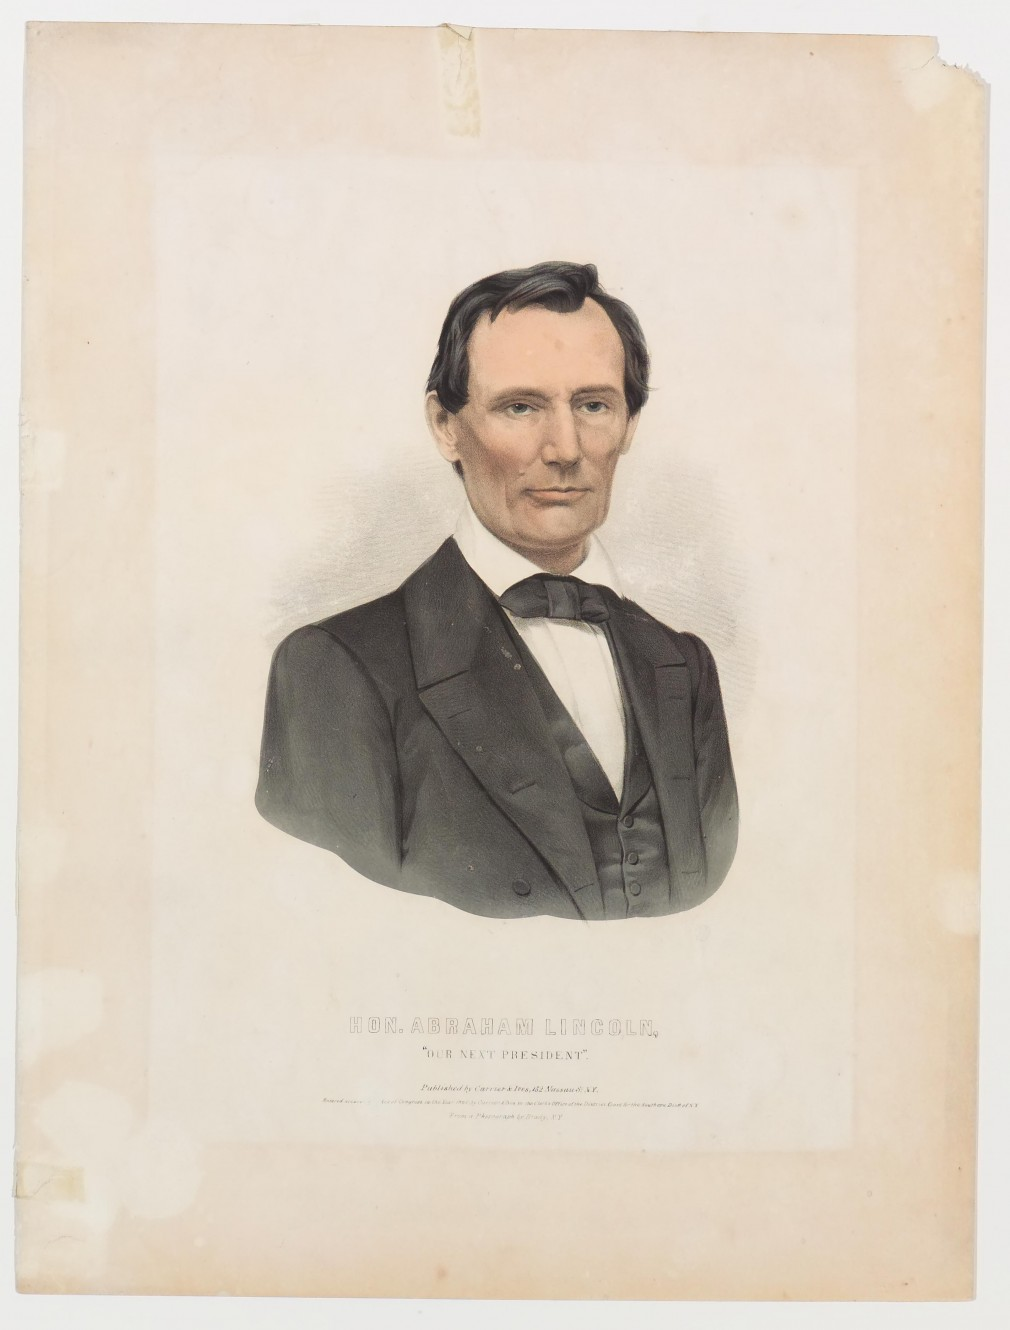 Mid chest view of unbearded Abraham Lincoln facing forward - three buttons visible on vest